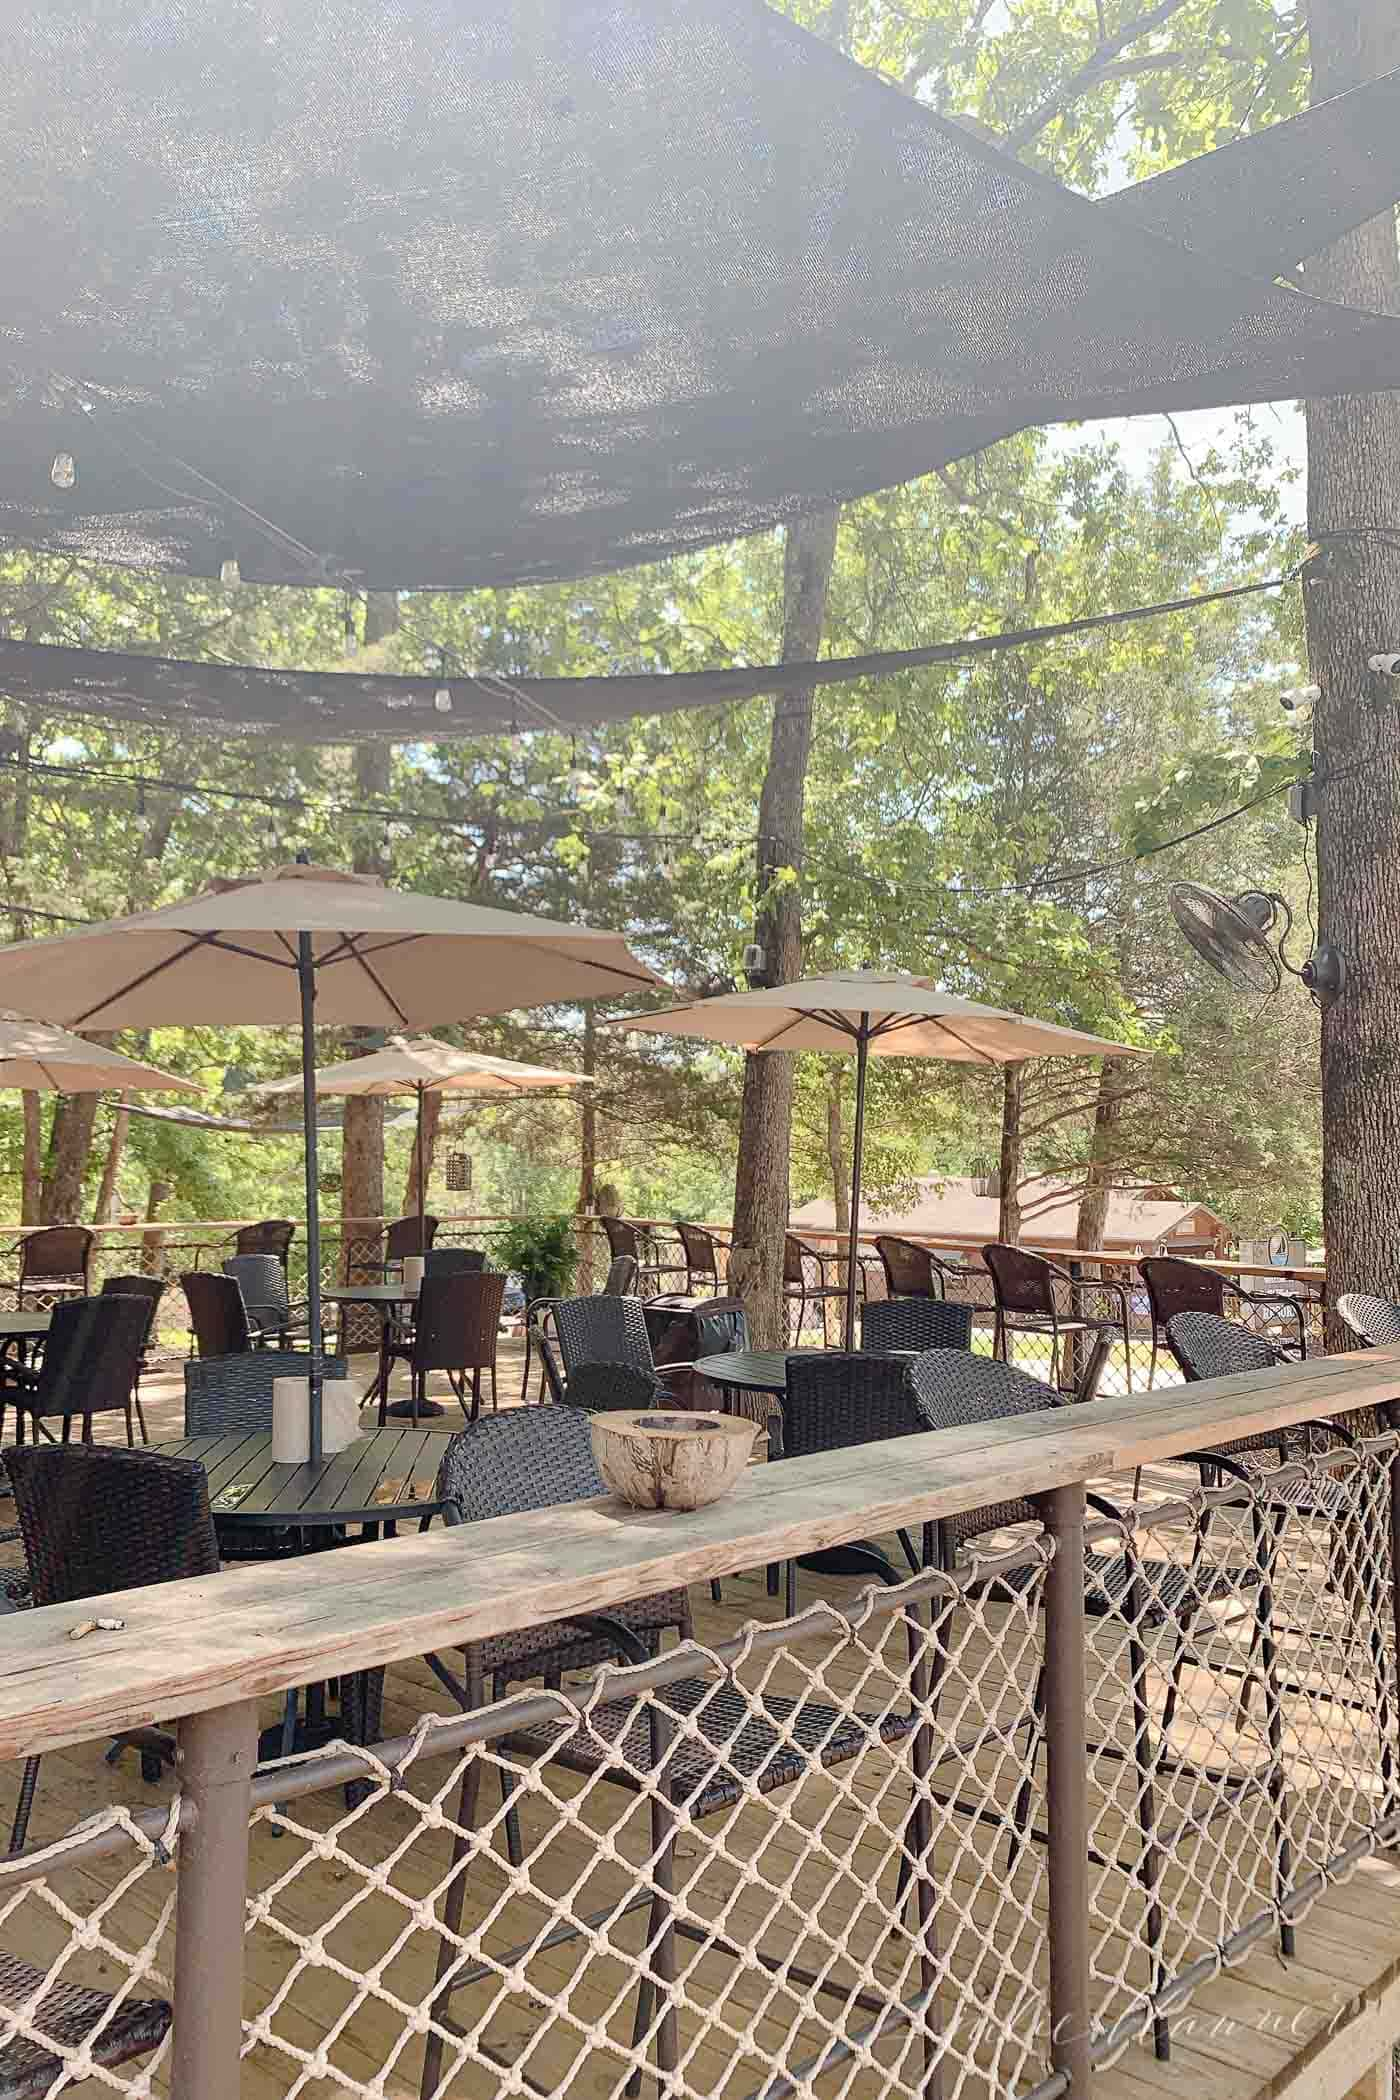 outdoor dining area with umbrellas at stillwater resort